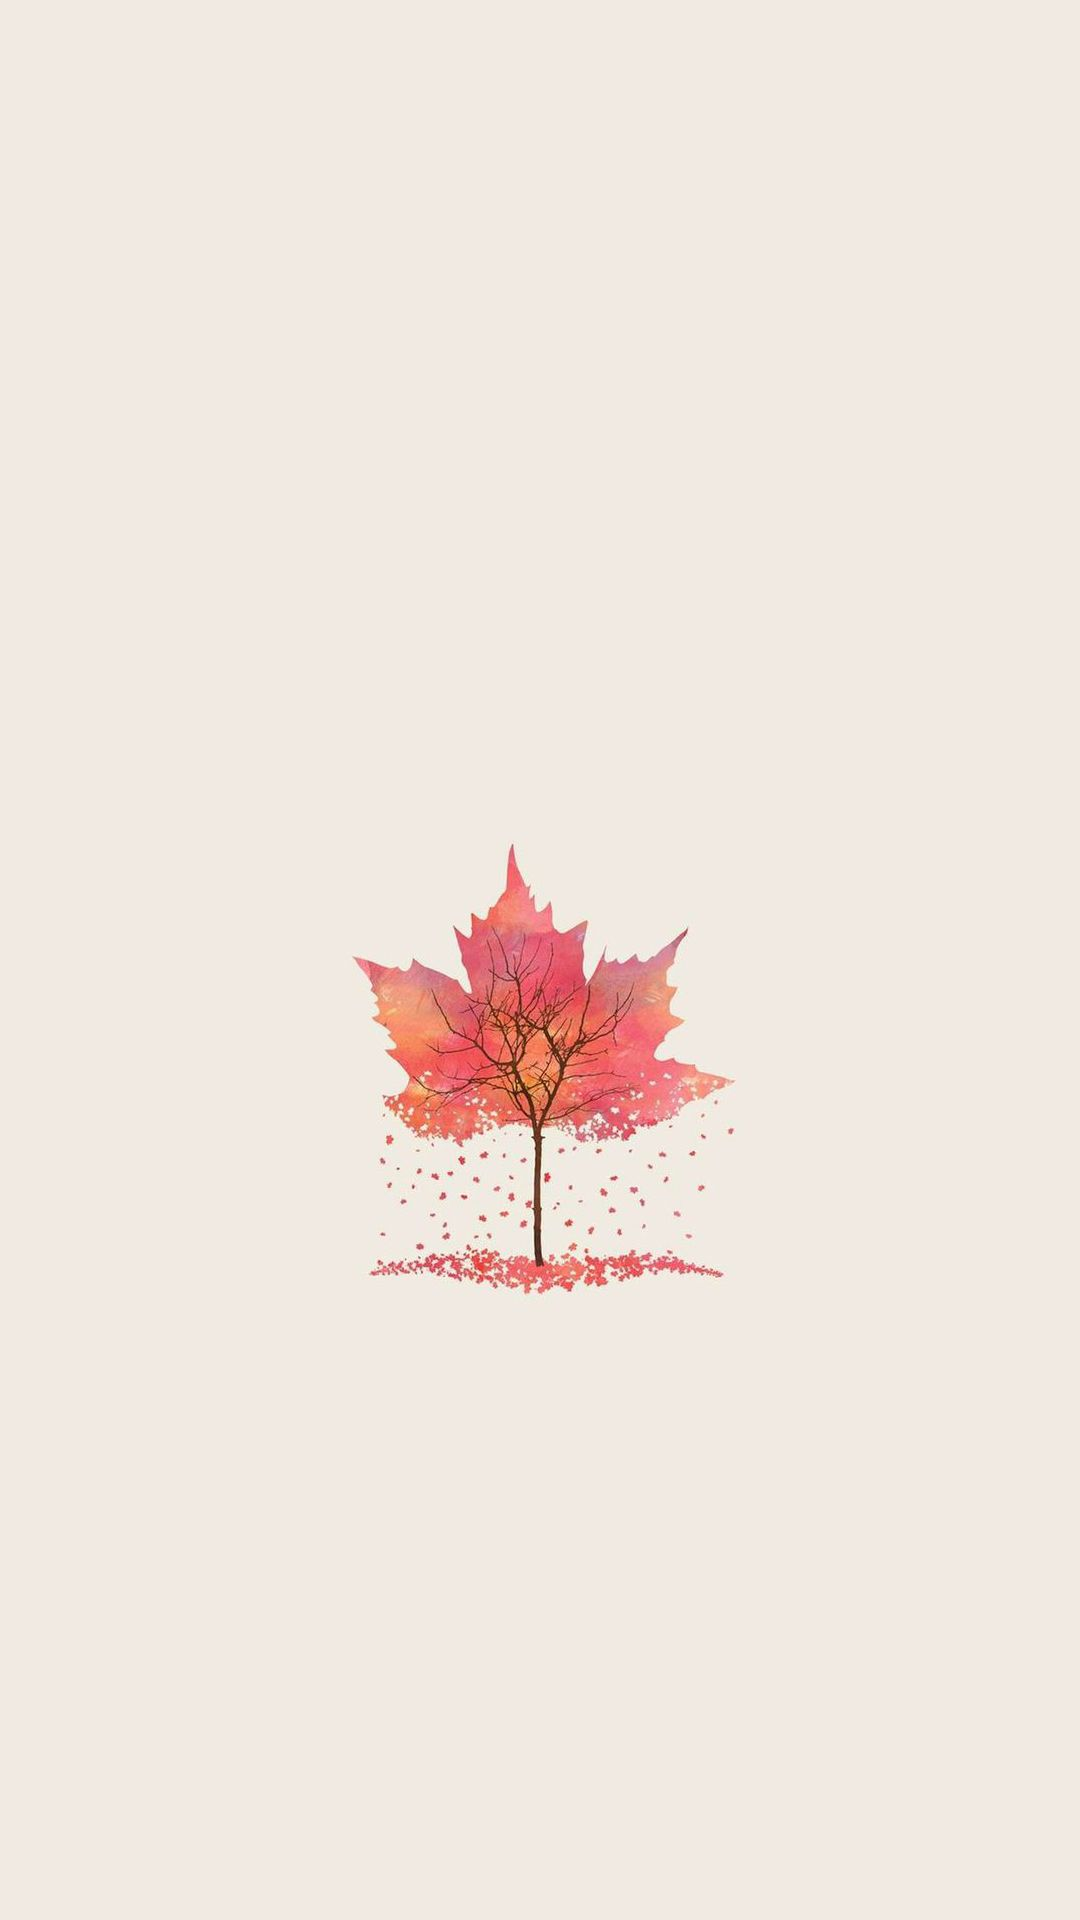 Autumn Tree Leaf Shape Illustration Iphone 6 Plus Wallpaper Autumn Leaves Wallpaper Fall Wallpaper Leaf Illustration